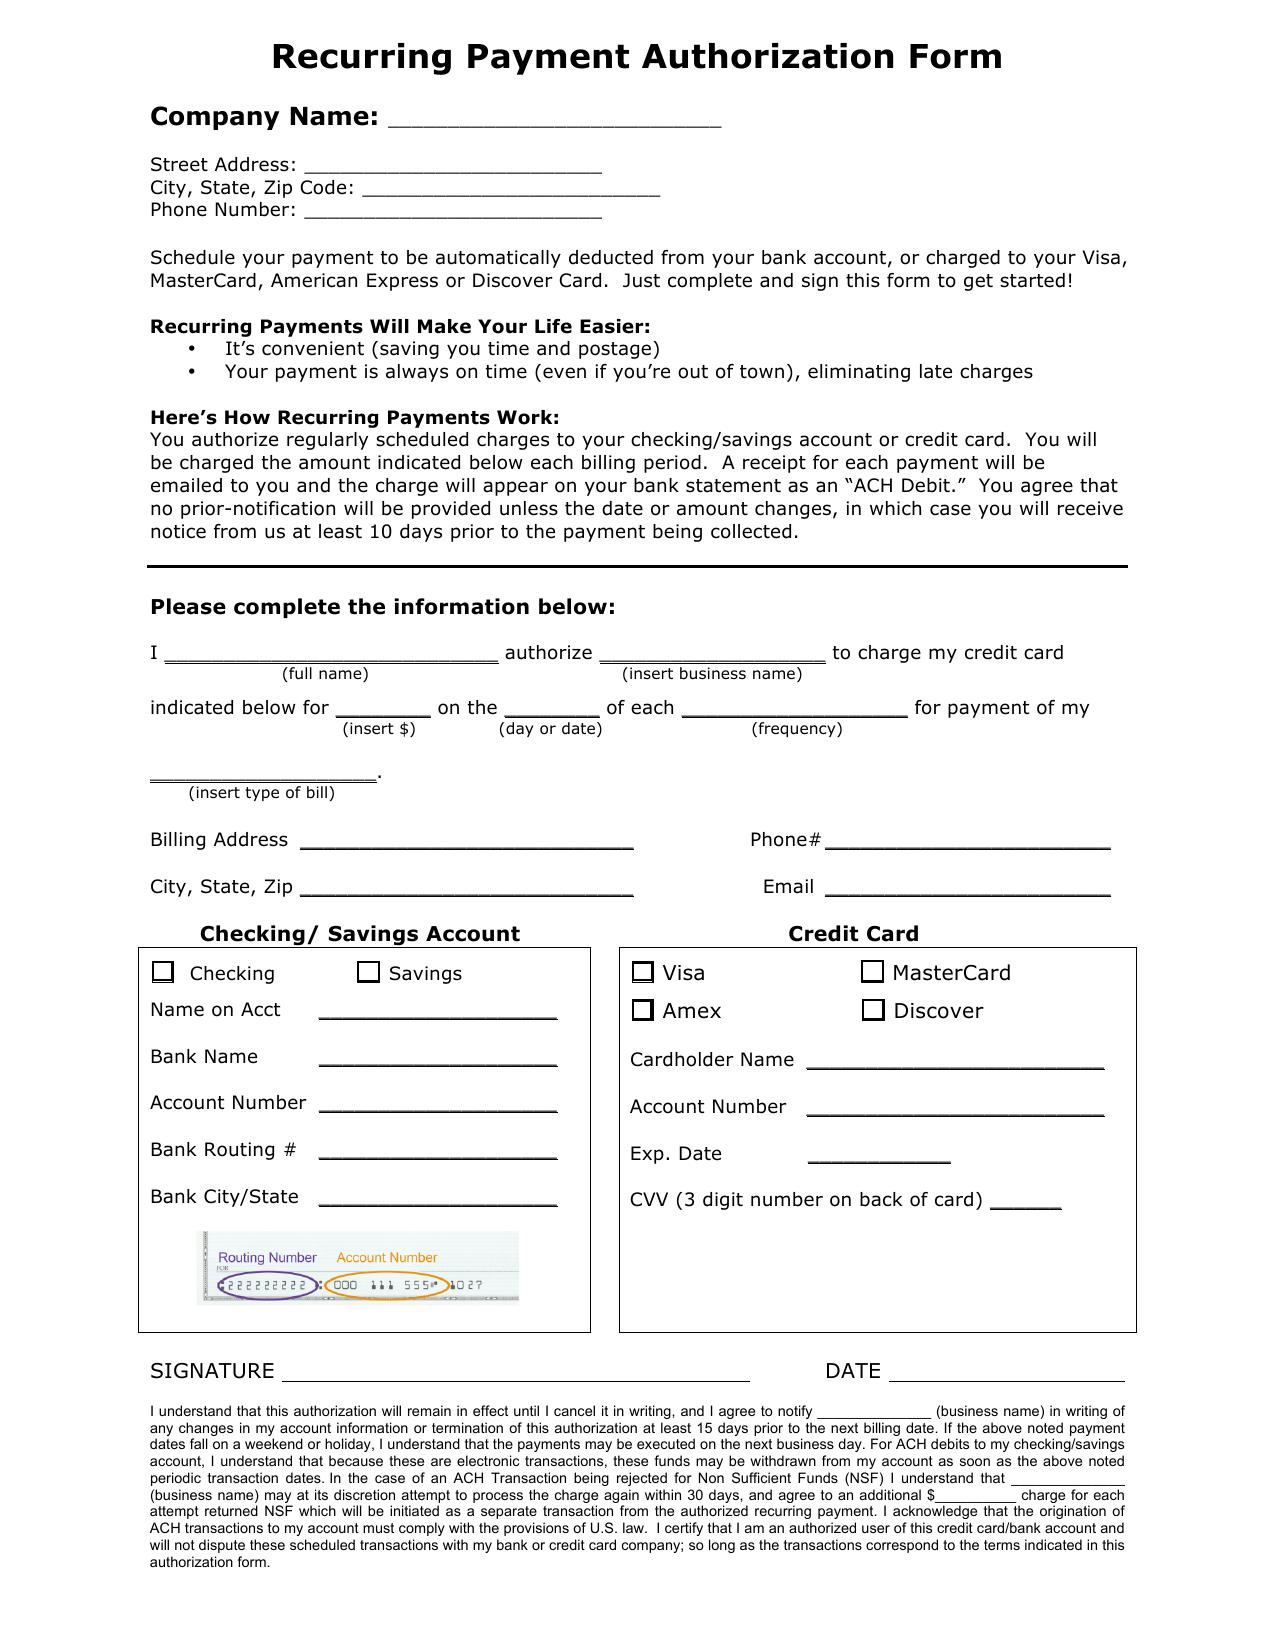 Ach Authorization Form Template Word